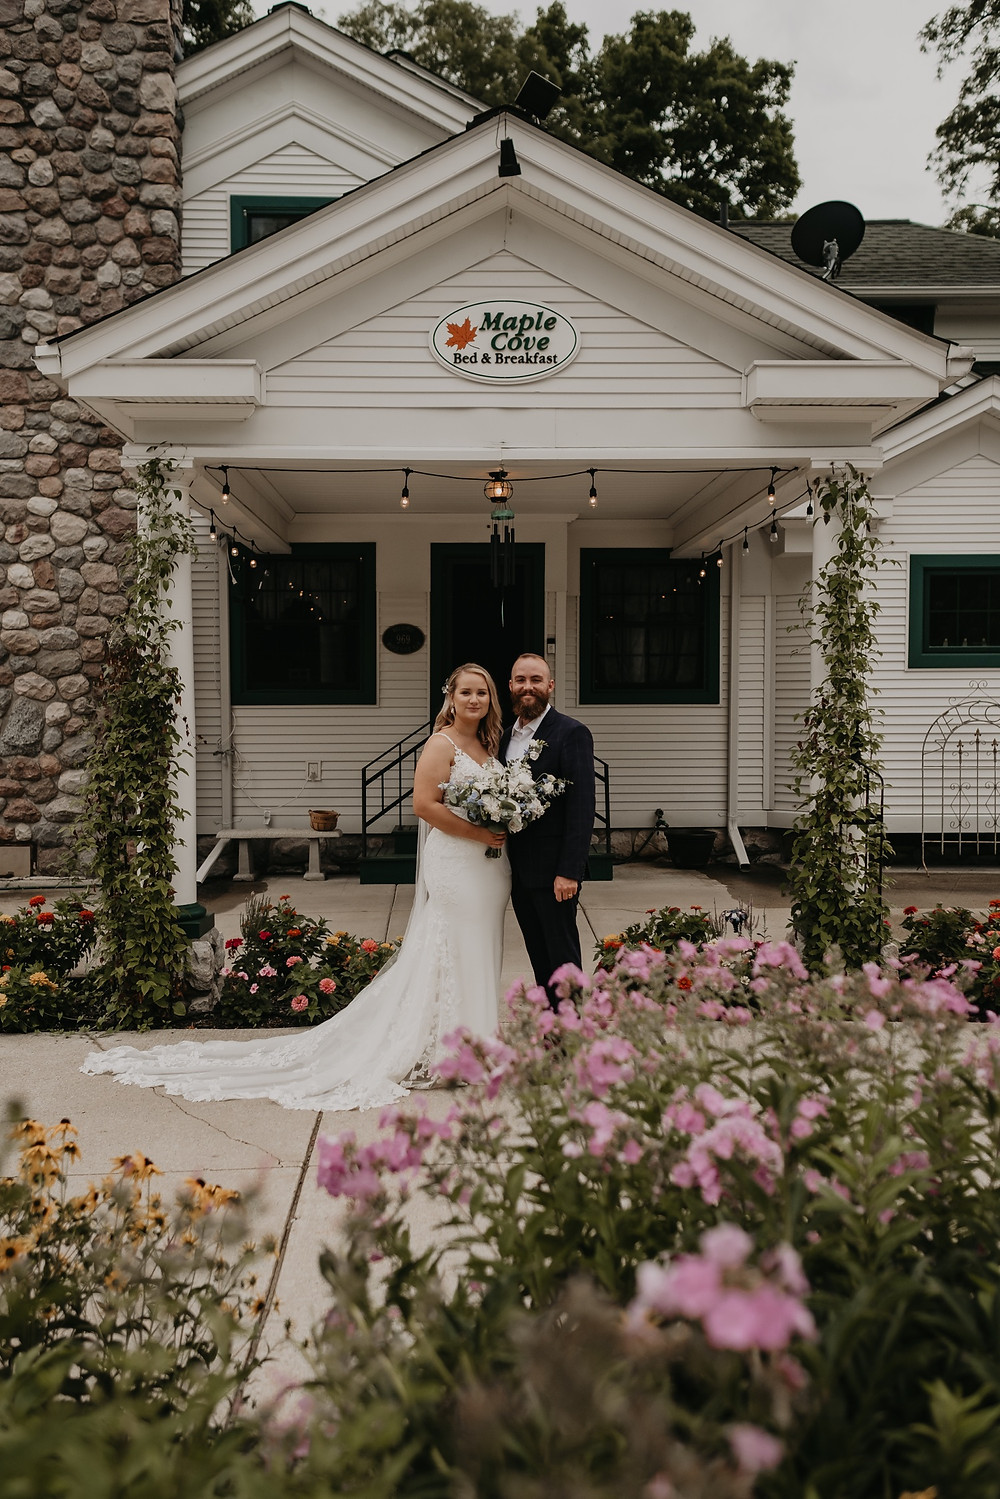 Maple Cove Bed and Breakfast with bride and groom. Photographed by Nicole Leanne Photography.